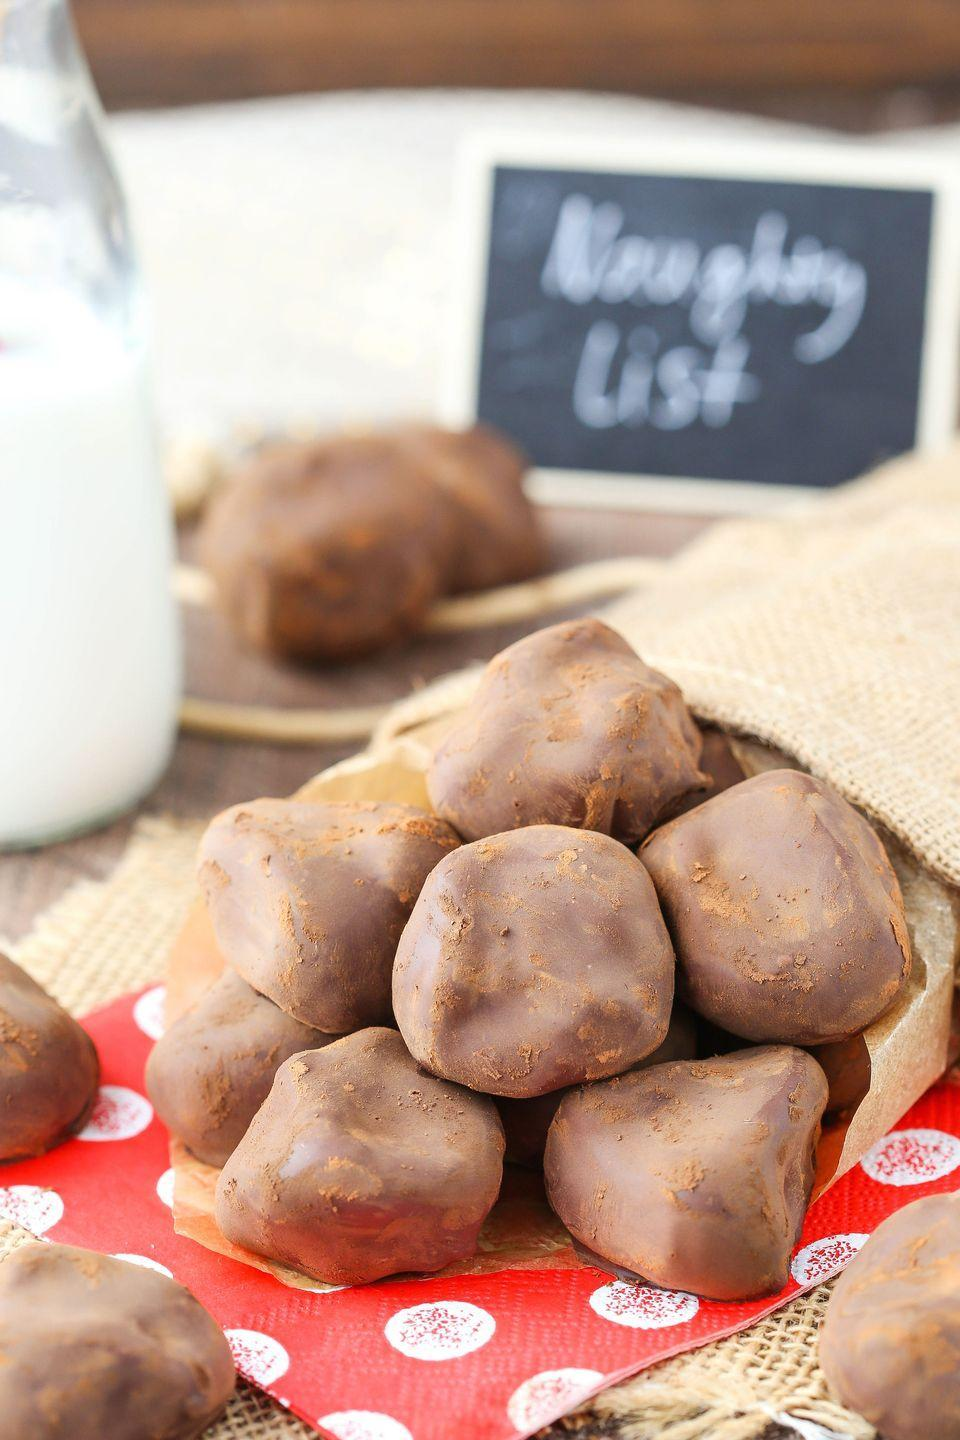 """<p>TBH we wouldn't mind getting a lump of this in our stocking.</p><p>Get the recipe from <a href=""""https://www.delish.com/cooking/recipe-ideas/recipes/a50446/oreo-coal-recipe/"""" rel=""""nofollow noopener"""" target=""""_blank"""" data-ylk=""""slk:Delish"""" class=""""link rapid-noclick-resp"""">Delish</a>. </p>"""